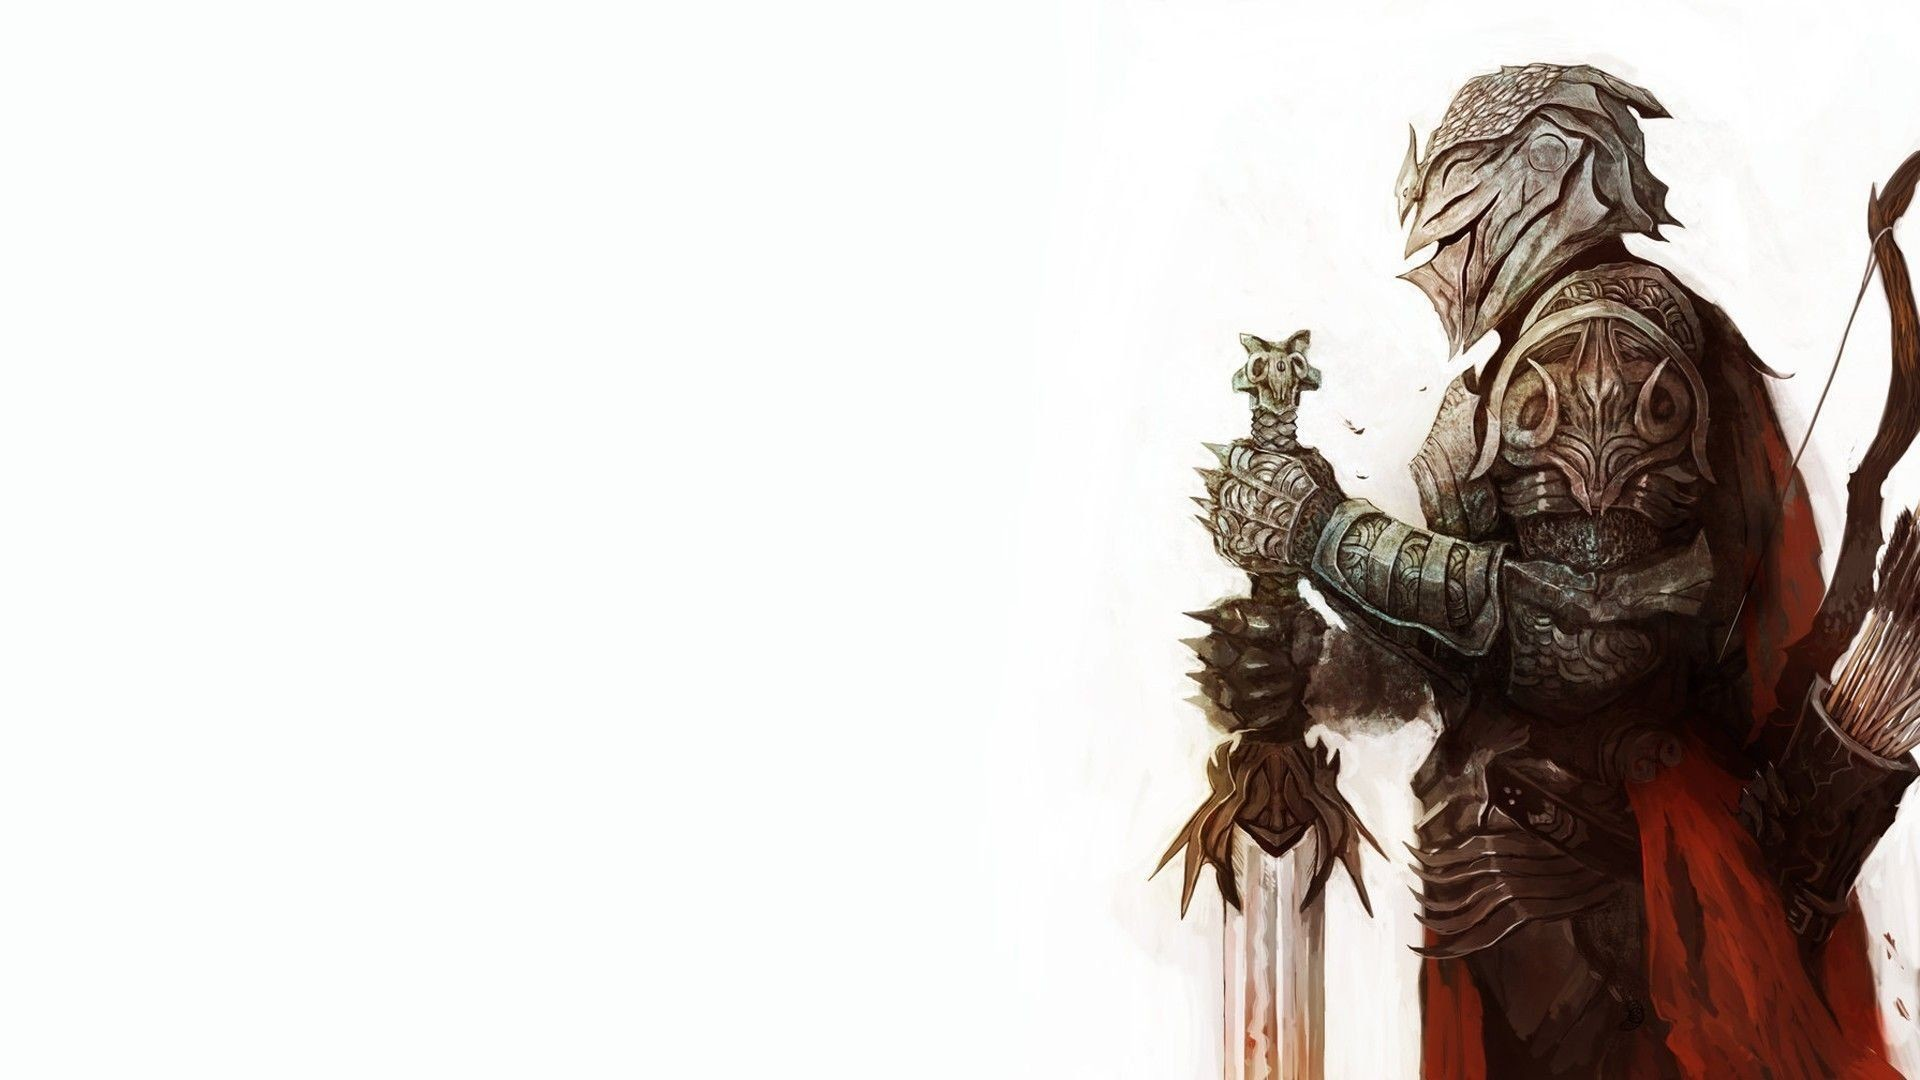 1920x1080, Knight Sword Wallpaper For Iphone - Knight Sword , HD Wallpaper & Backgrounds